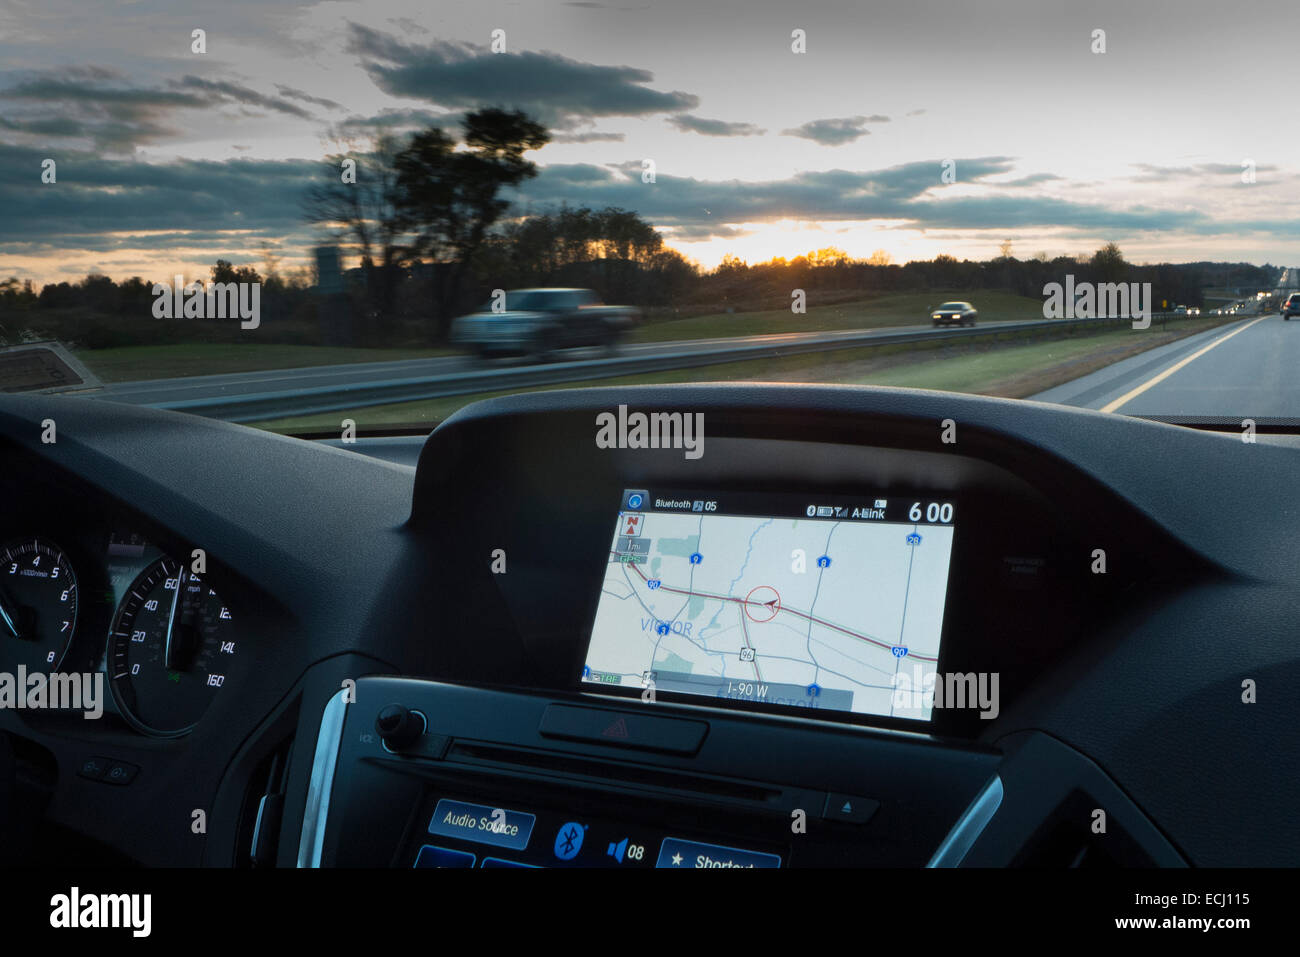 On the road with GPS. - Stock Image